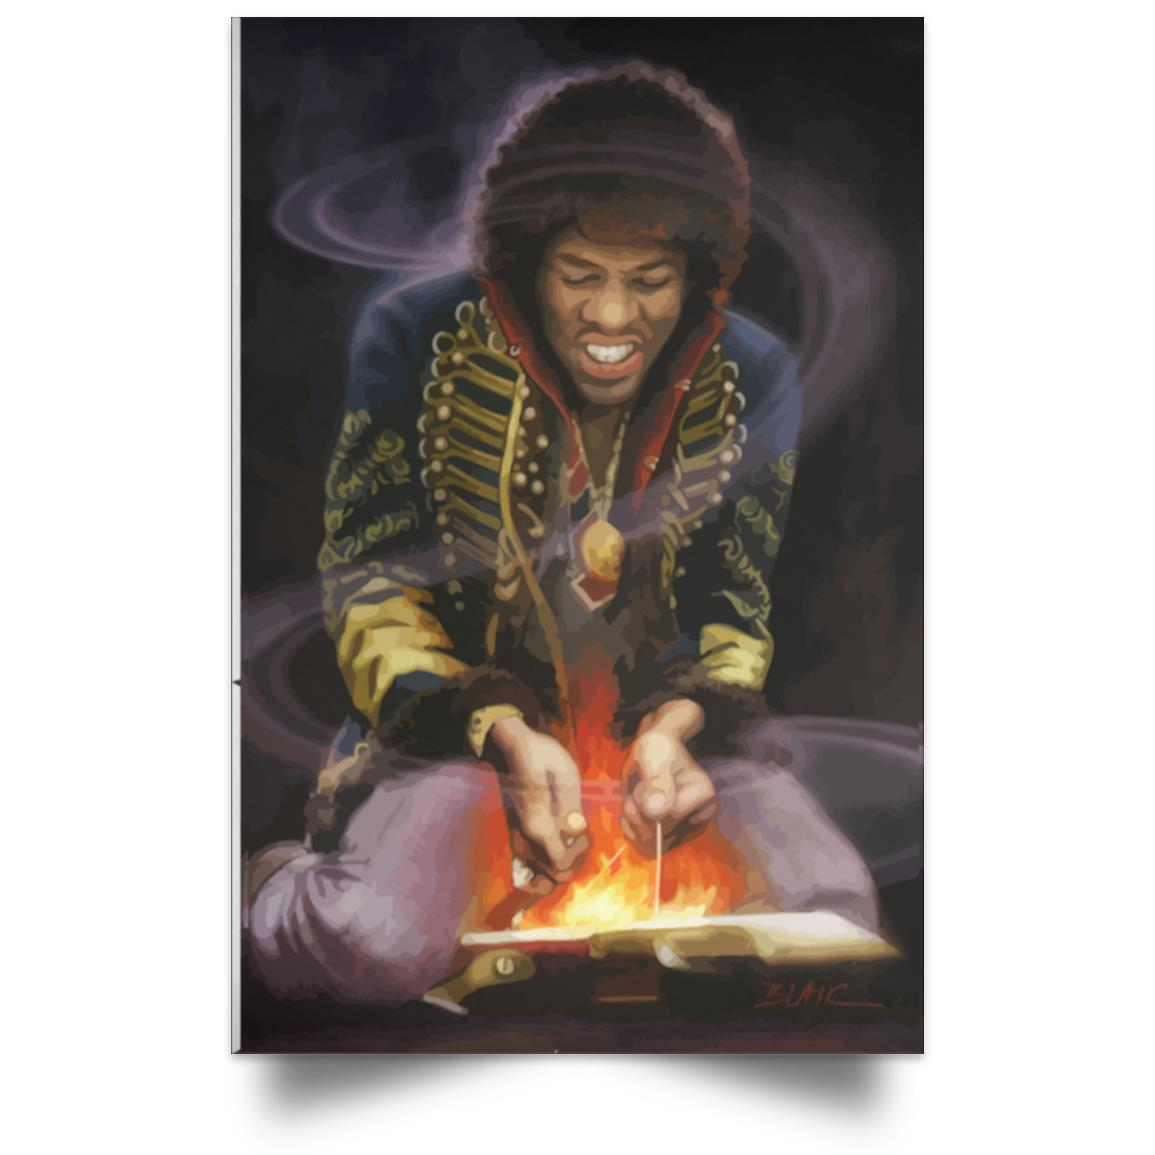 JIMI HENDRIX FEEL MY FIRE POSTER 1